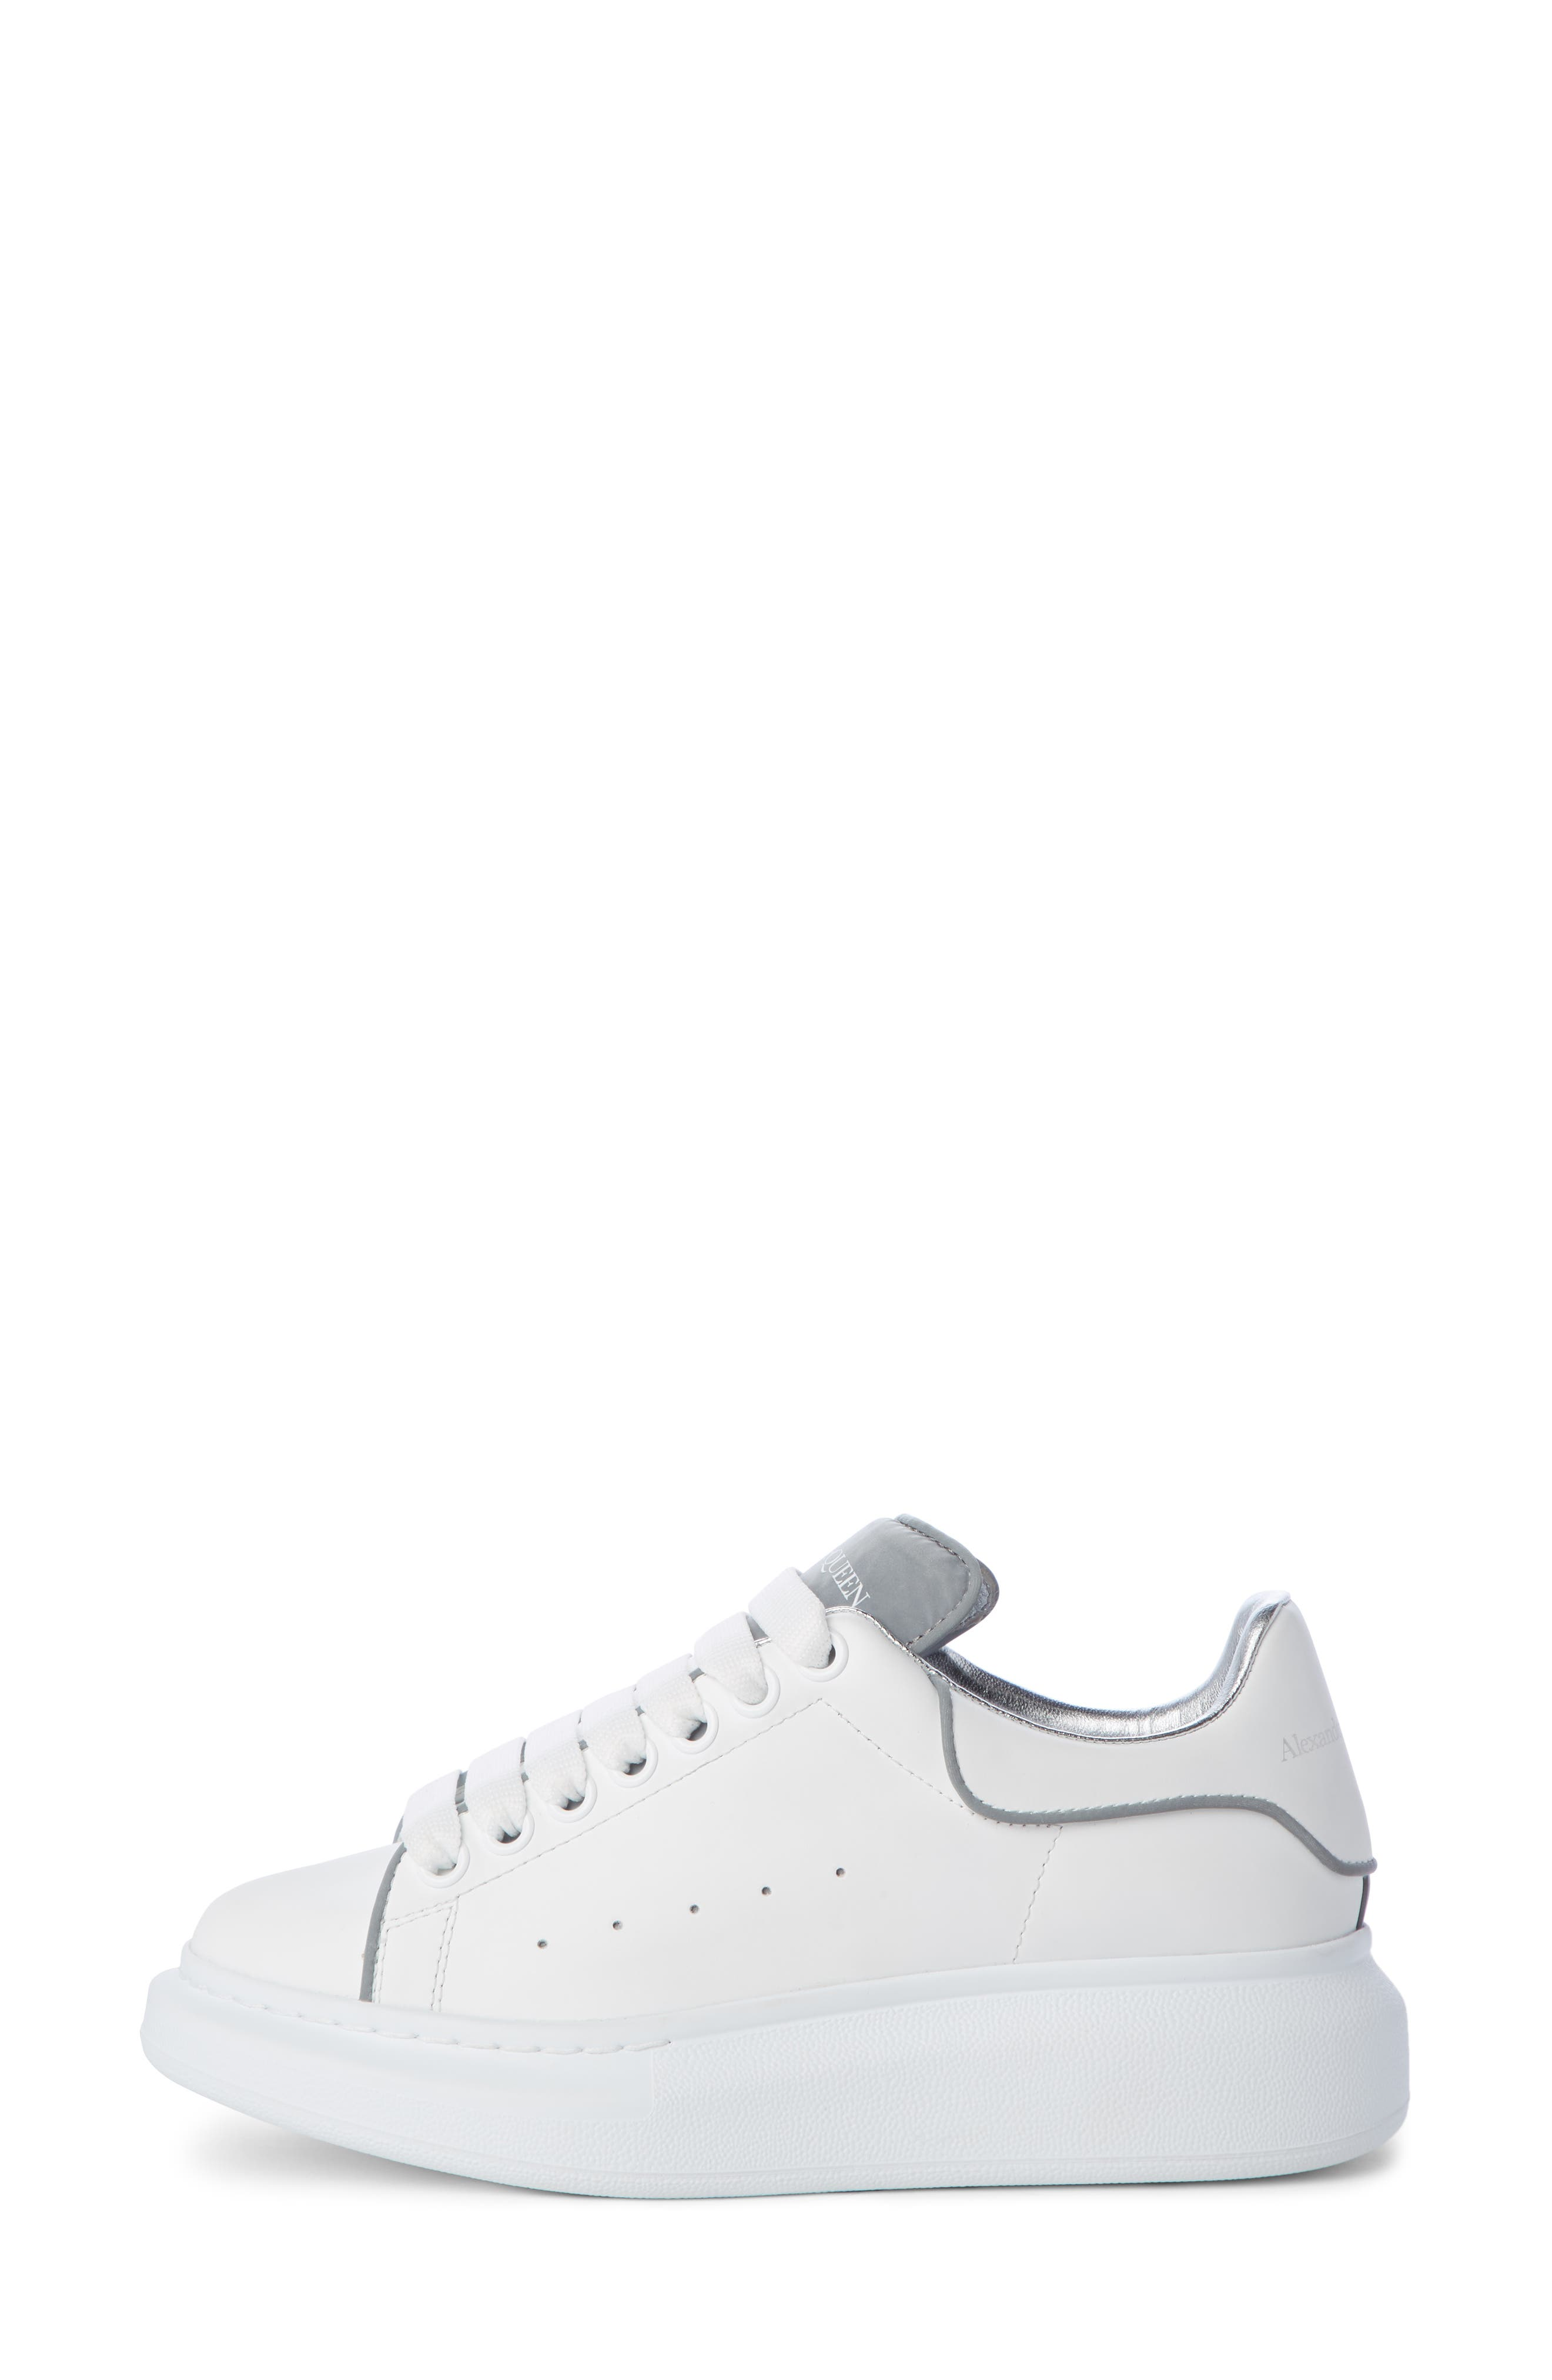 ALEXANDER MCQUEEN,                             Sneaker,                             Alternate thumbnail 3, color,                             WHITE/ SILVER PIPING